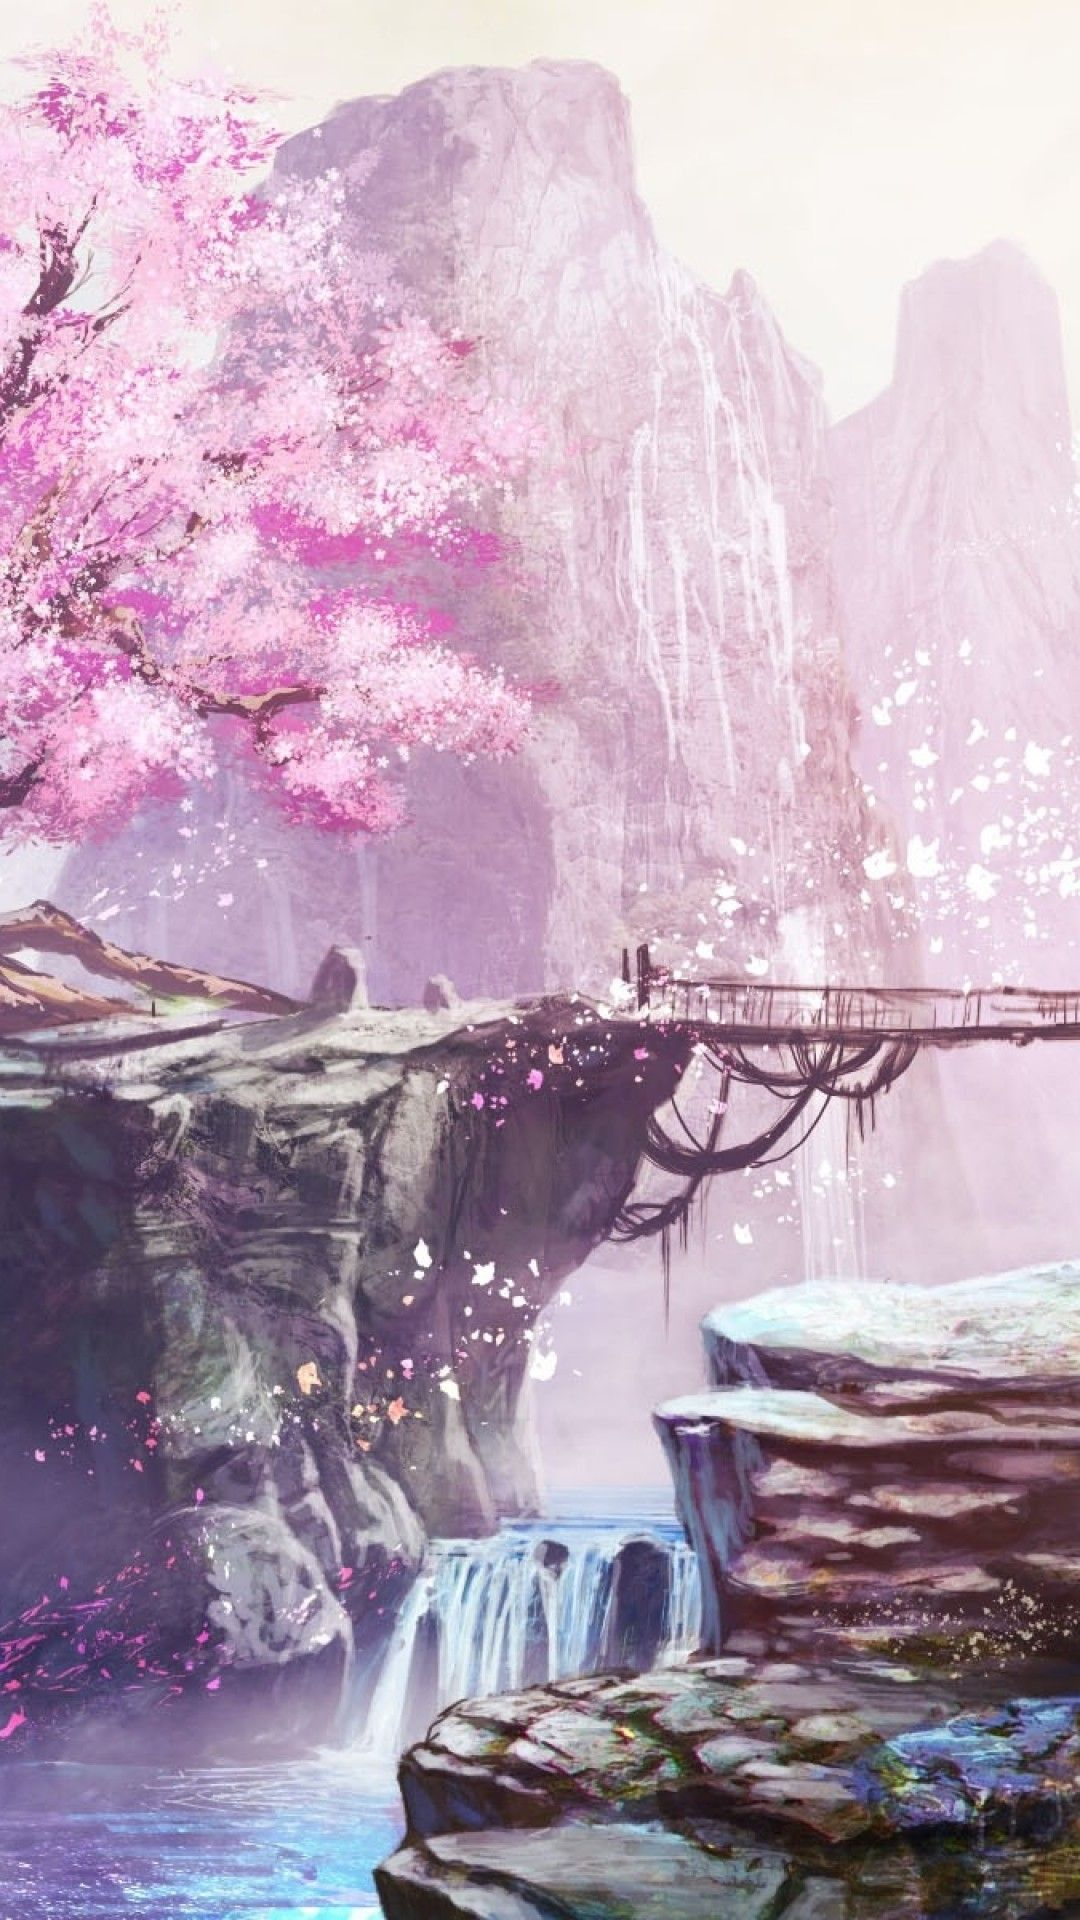 Https All Images Net Anime Cherry Blossom Iphone Wallpaper Lovely Cherry Blossom Wallpa Anime Backgrounds Wallpapers Scenery Wallpaper Fantasy Art Landscapes